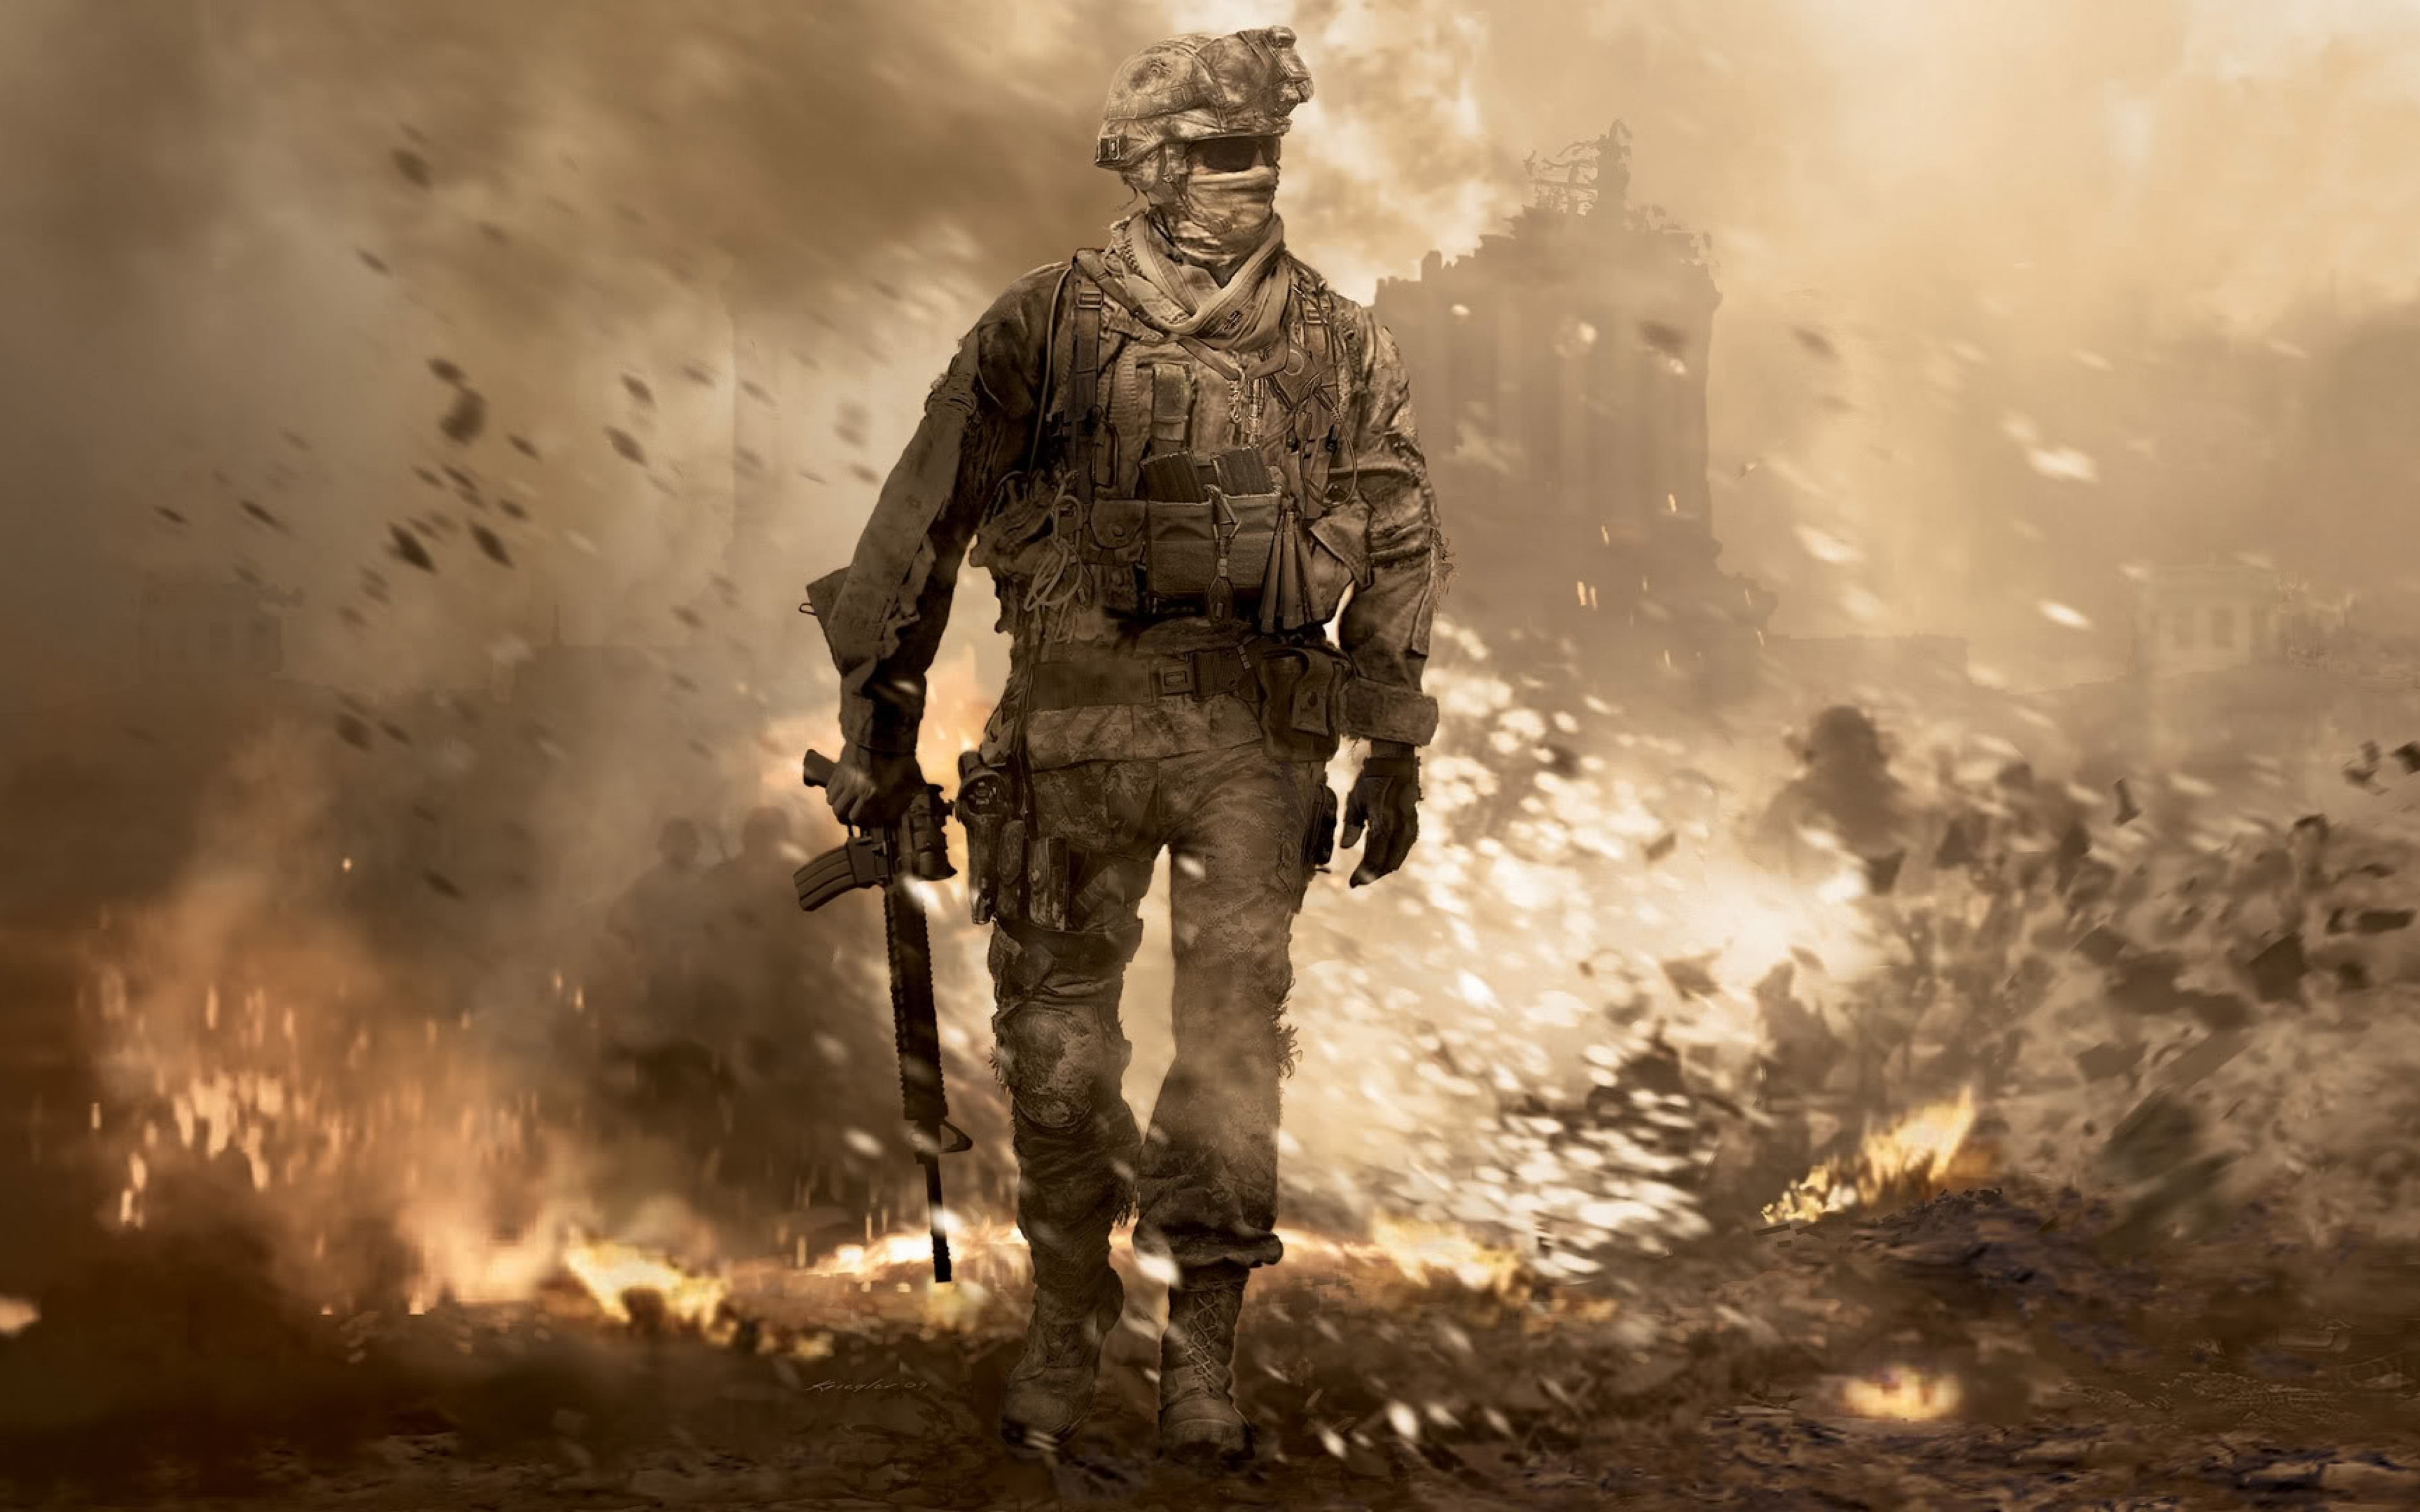 4K HD call of duty soldier gun glasses explosion 3840×2400